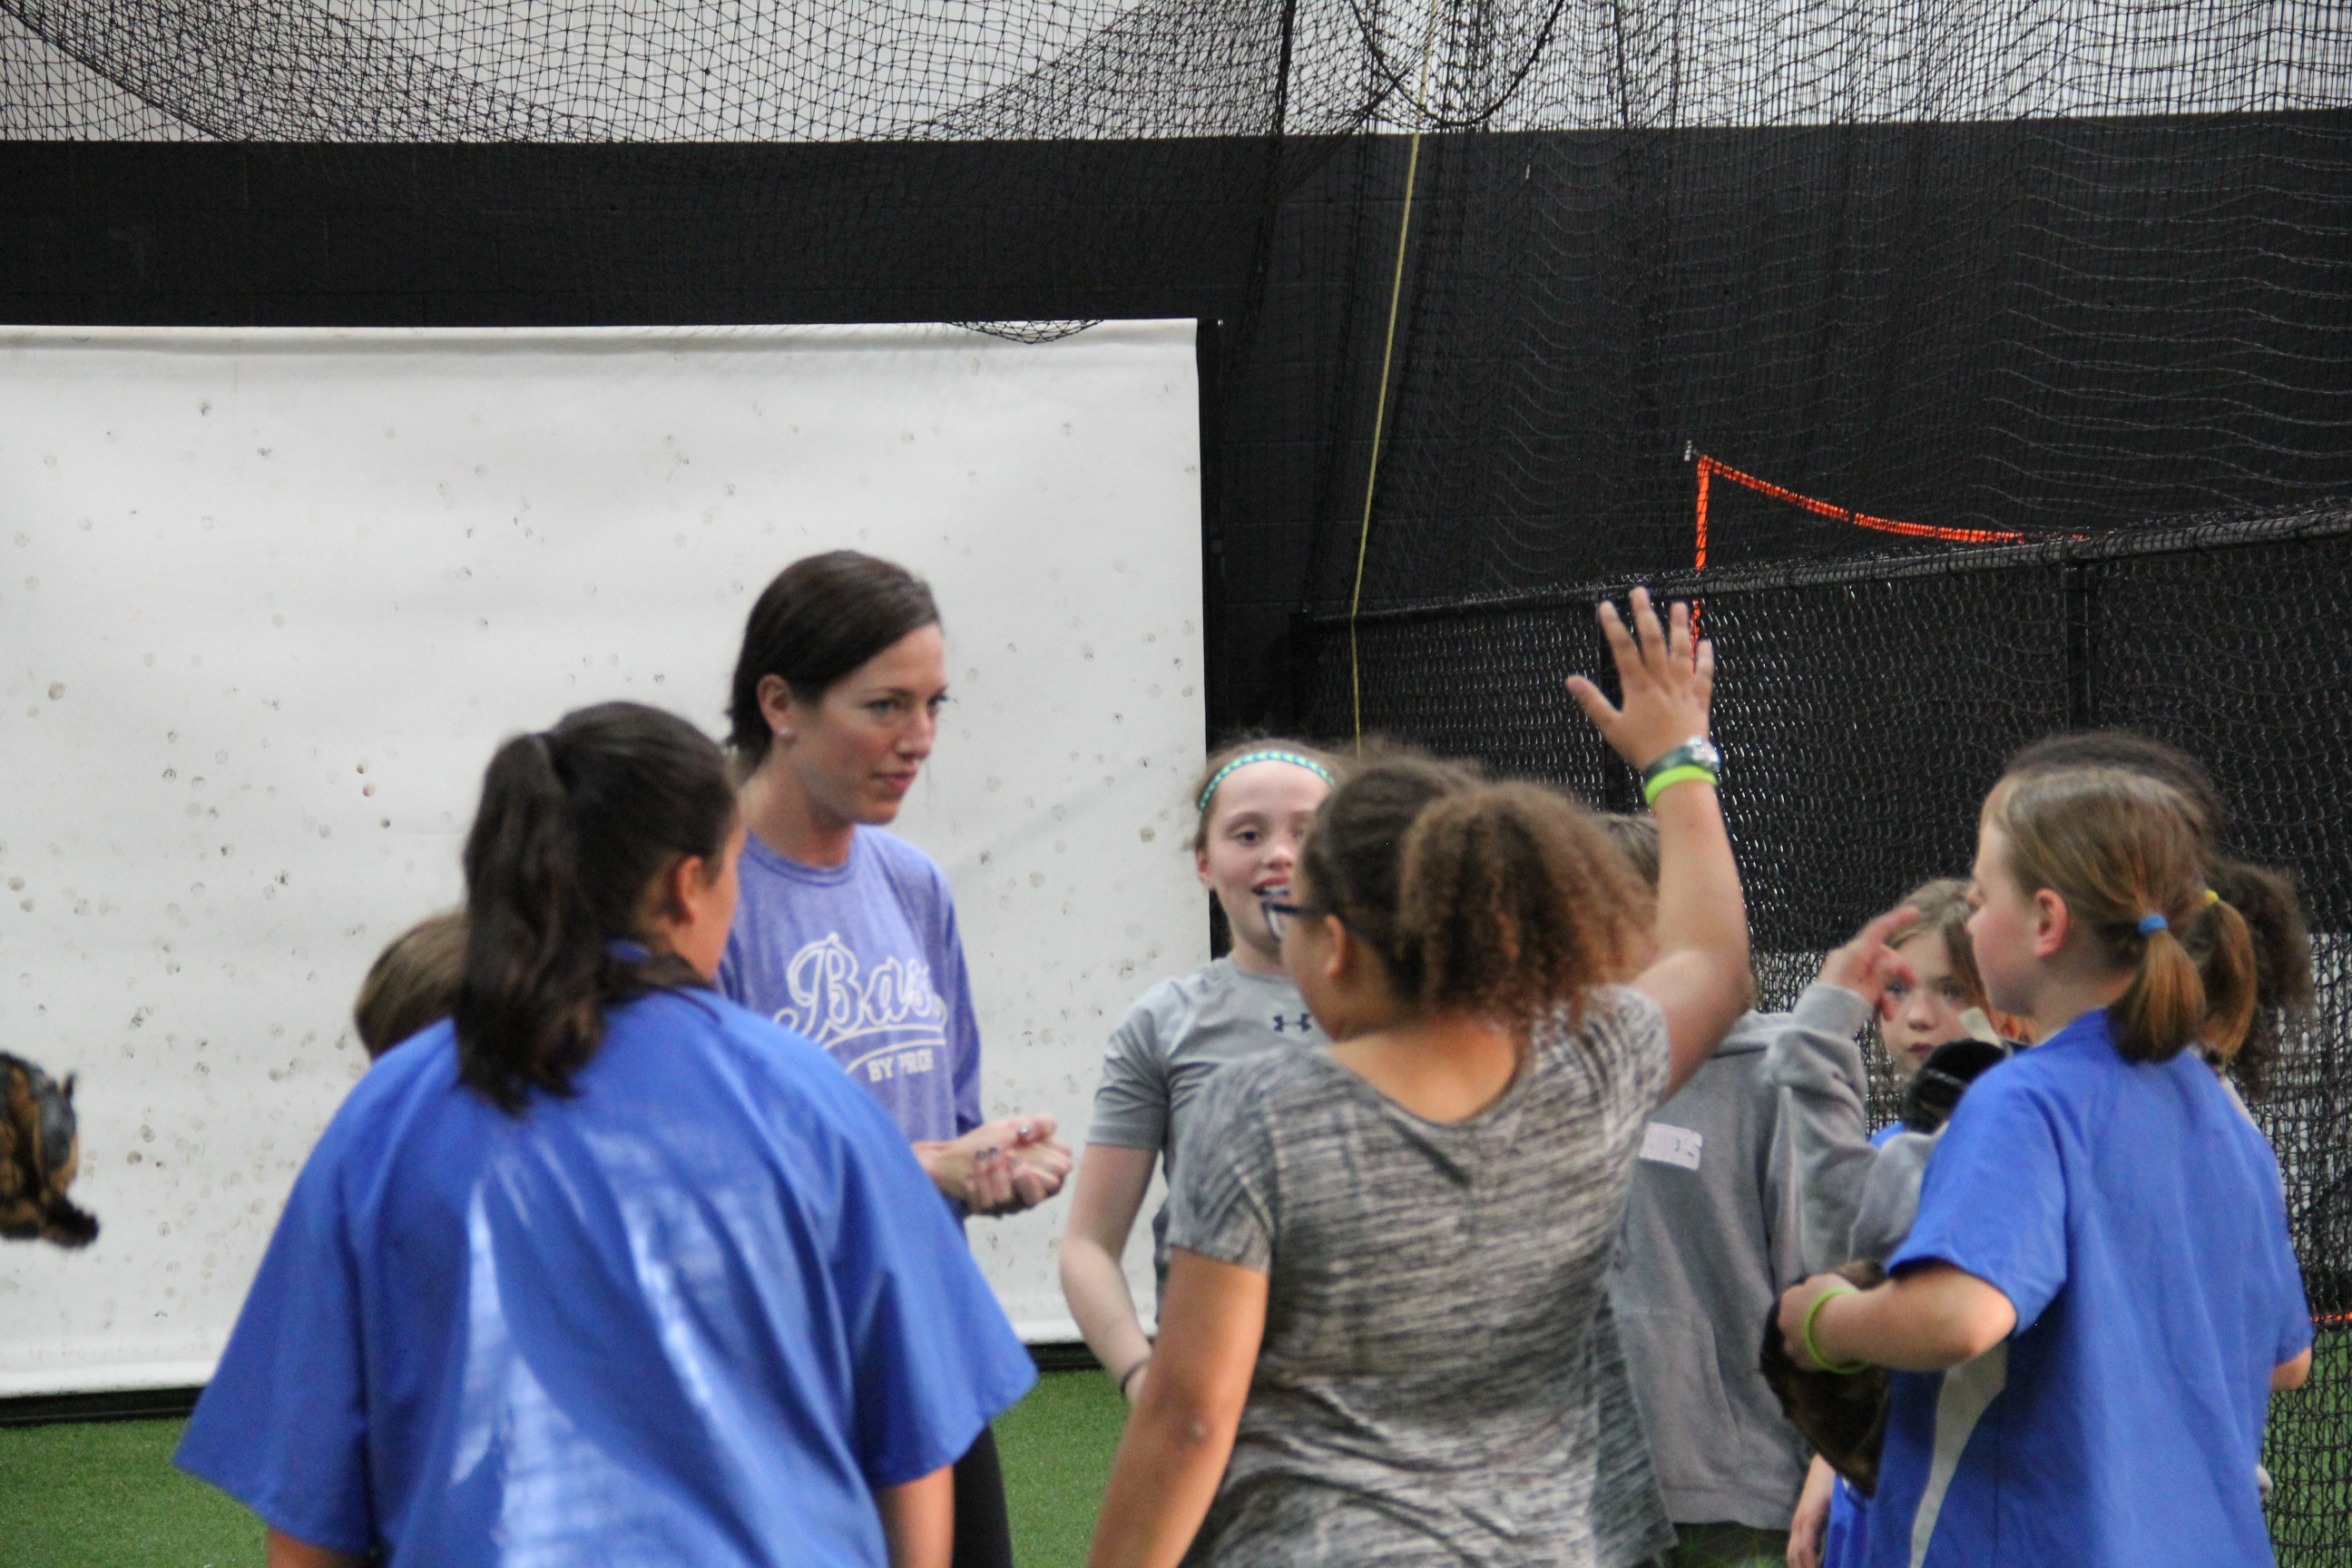 Softball Clinic